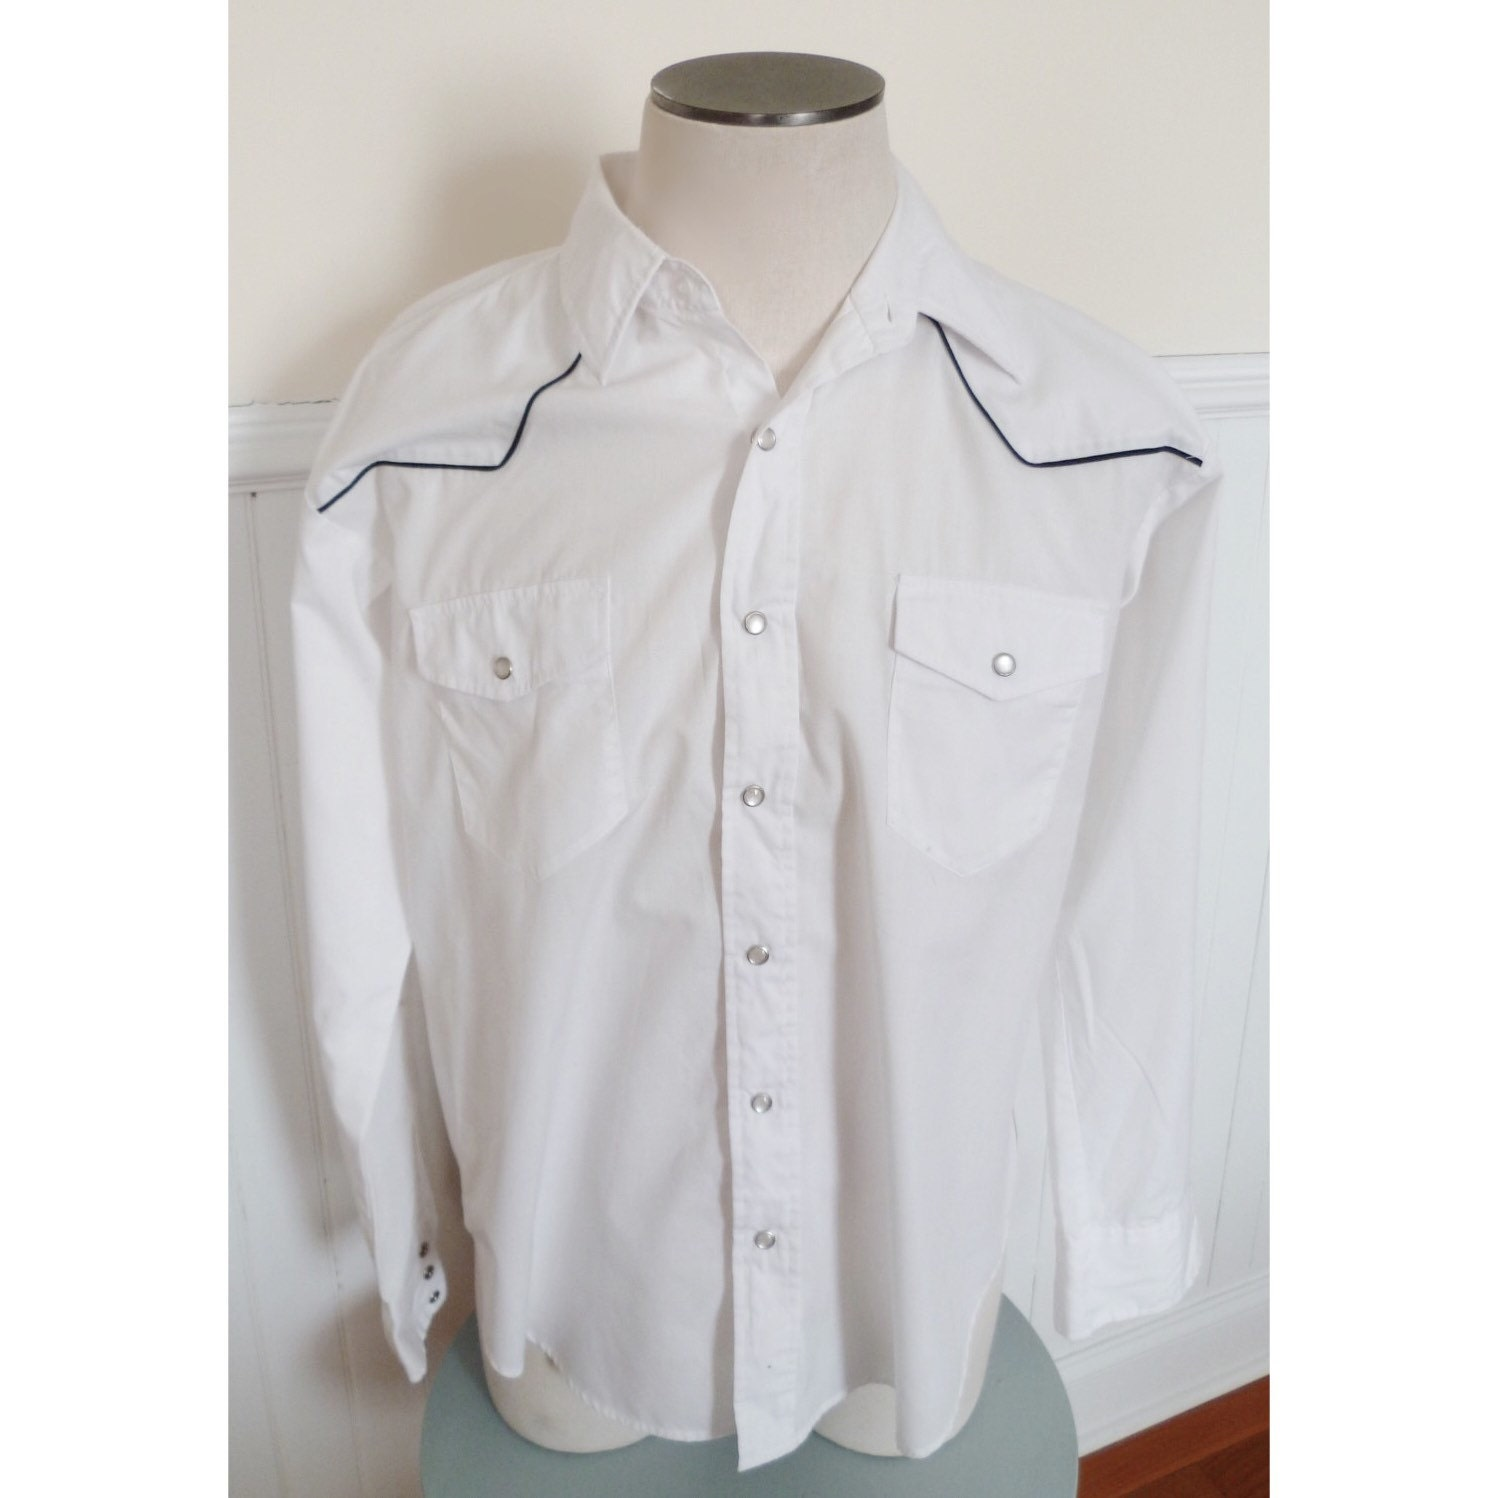 Vintage 70s high noon men 39 s white western shirt xl for Mens shirts with snaps instead of buttons